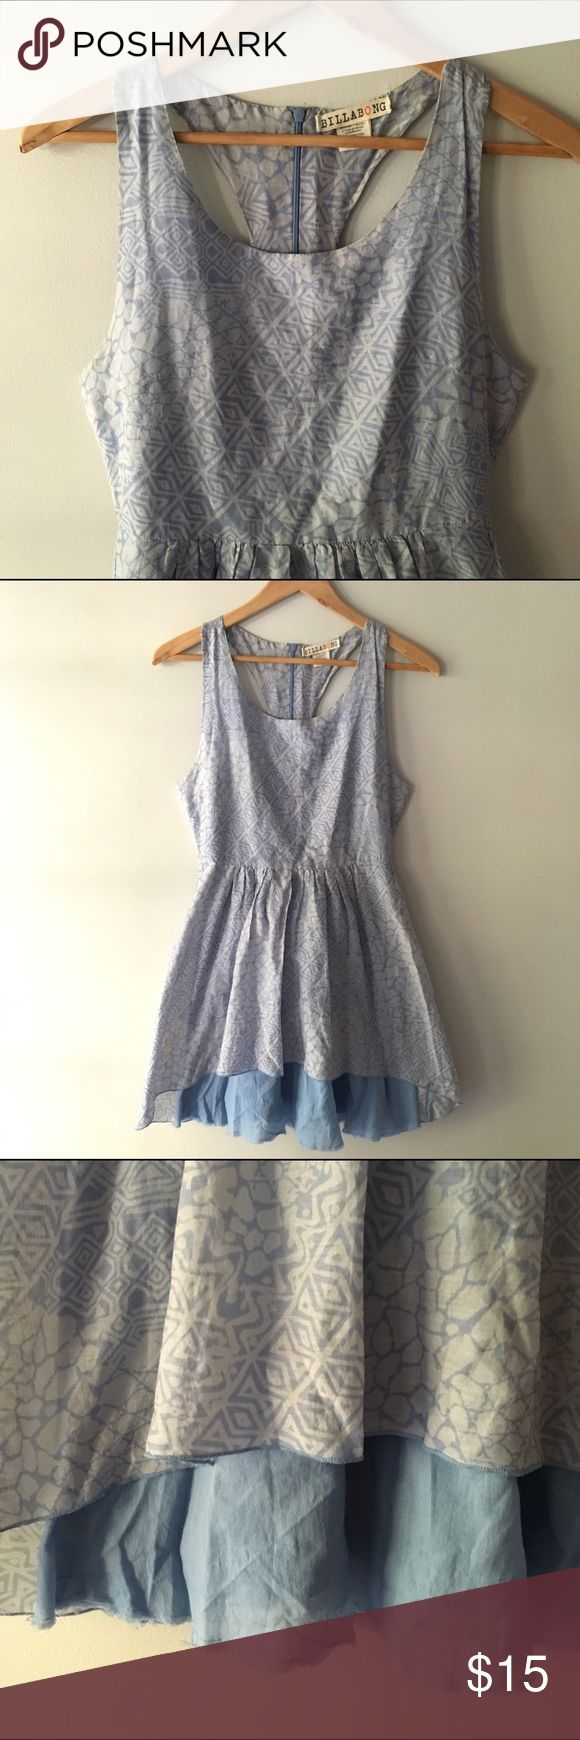 """Billabong Sun Dress Adorable and versatile Billabong sundress in beautiful robin's egg blue. The front of the skirt is high-low to reveal the blue slip layer beneath and has racer back. Hits the knee on me (5'8"""") Billabong Dresses"""